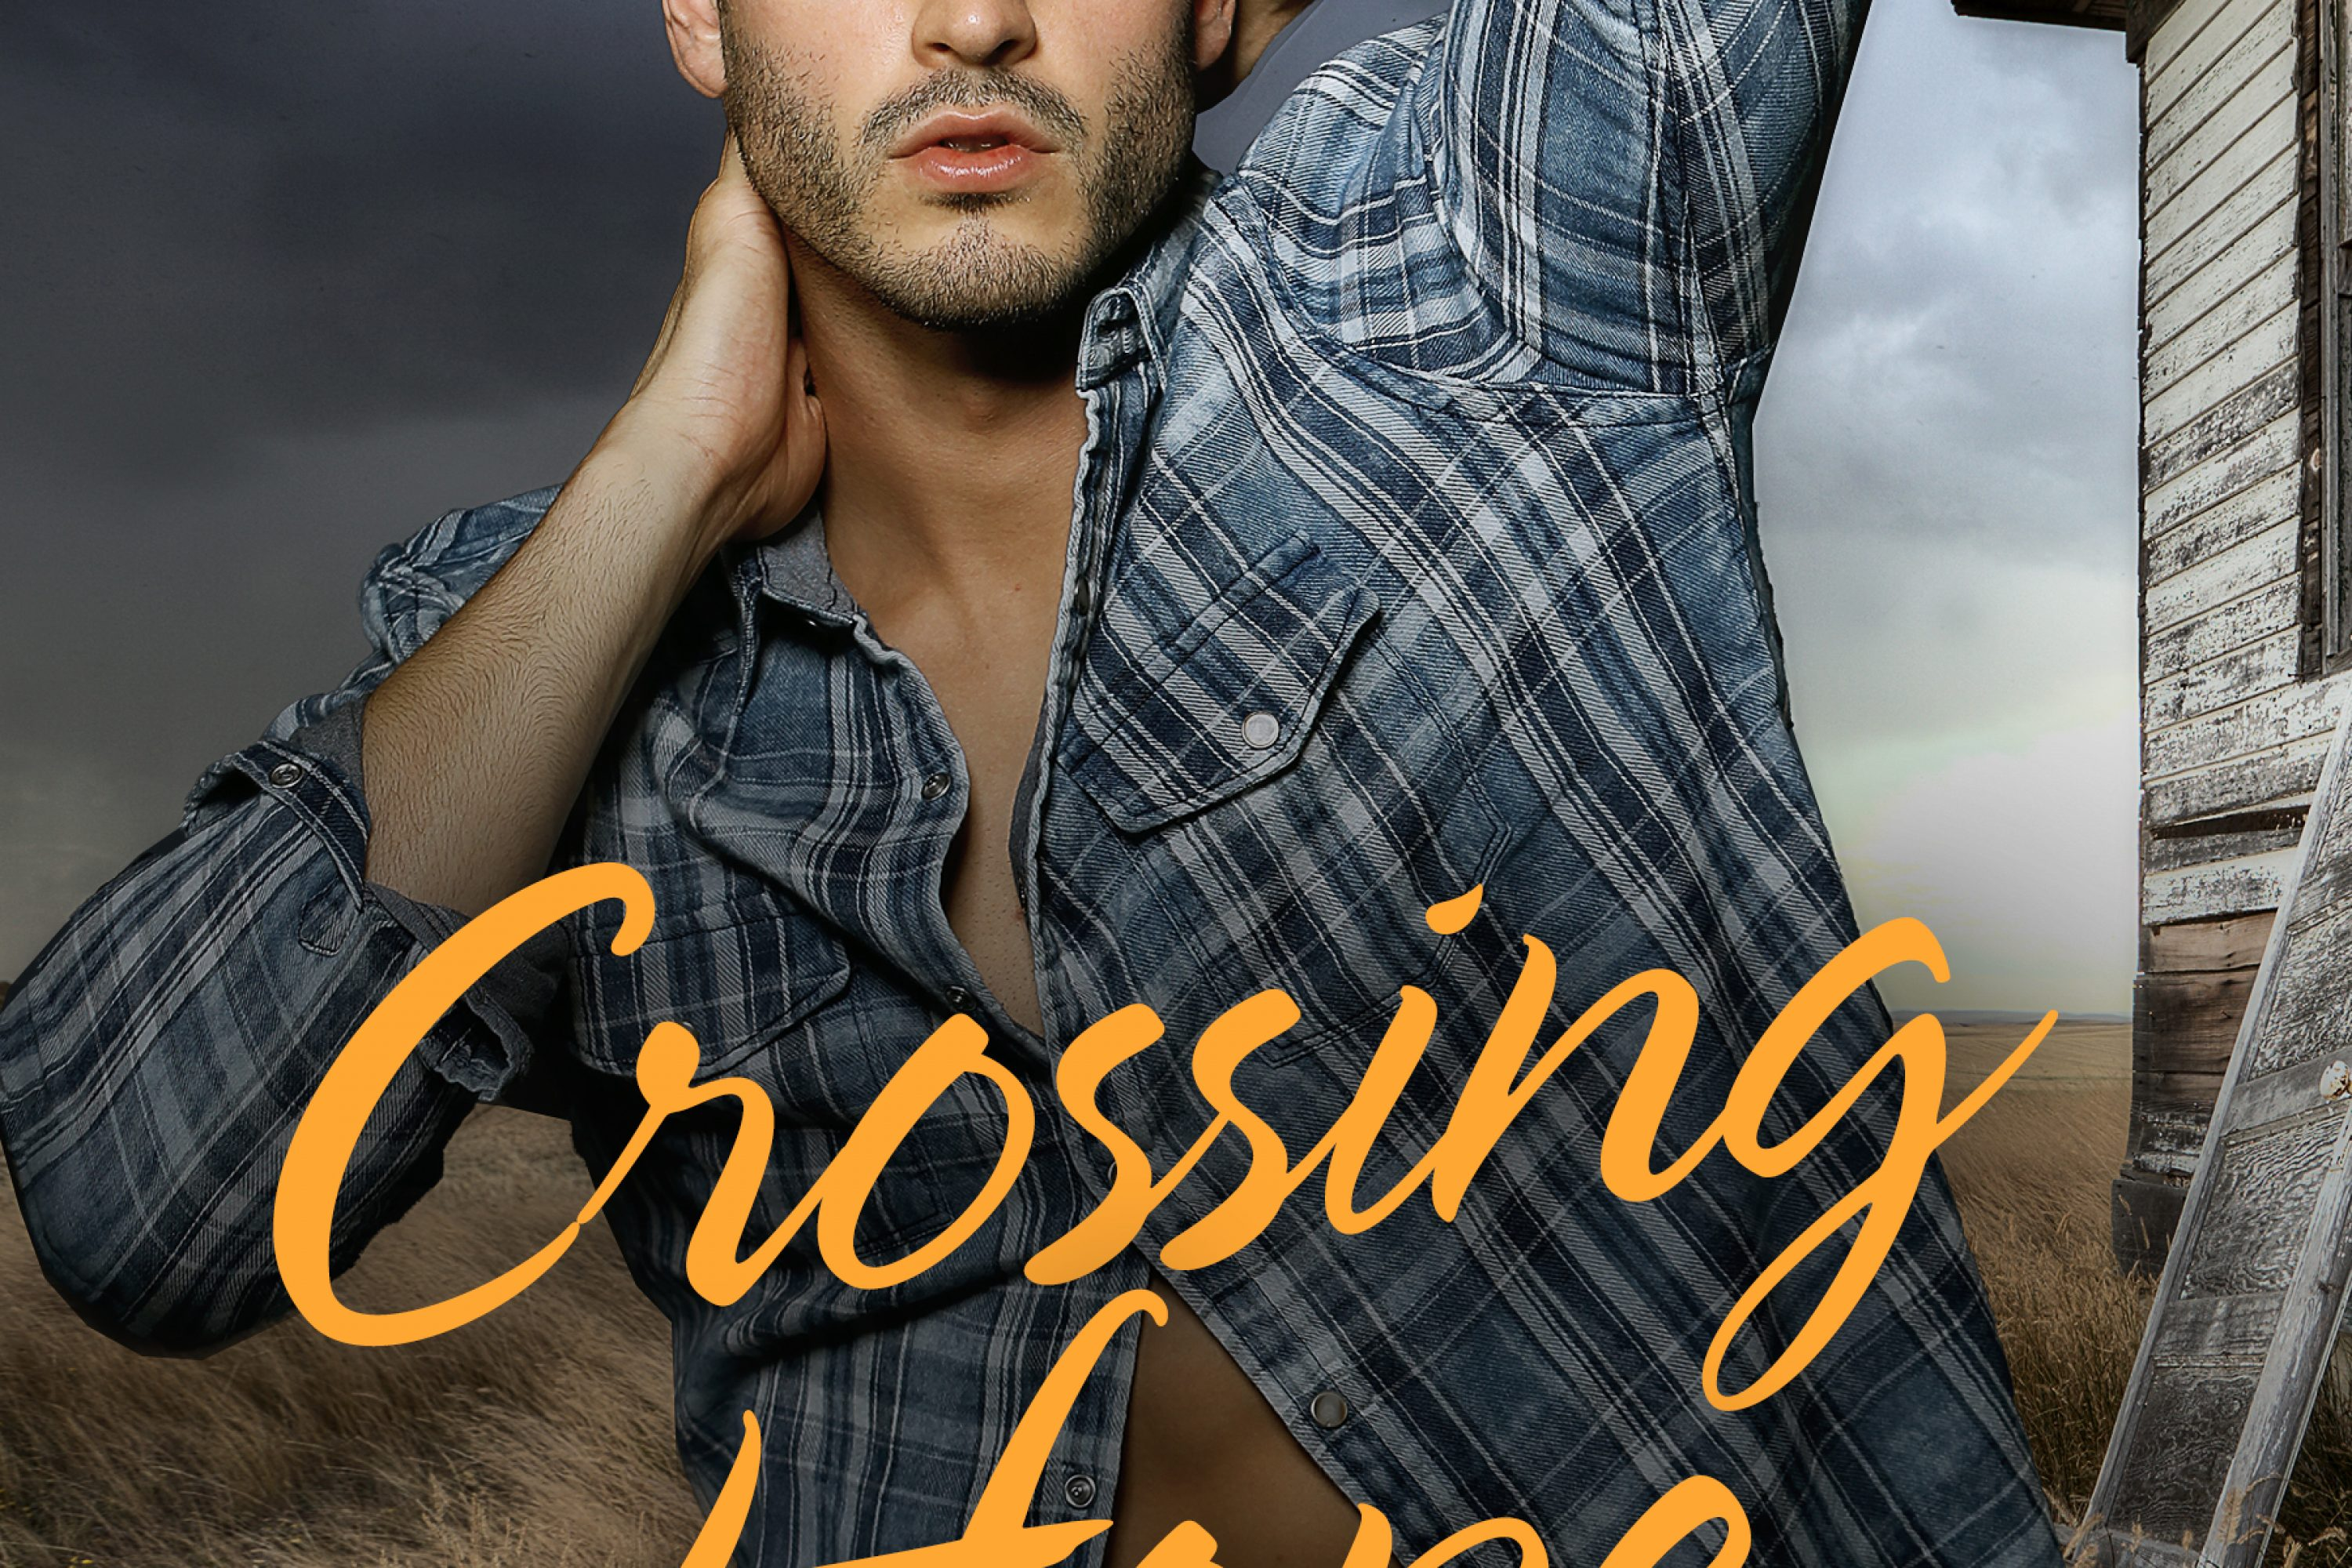 Review: Crossing Hope by Kimberly Kincaid